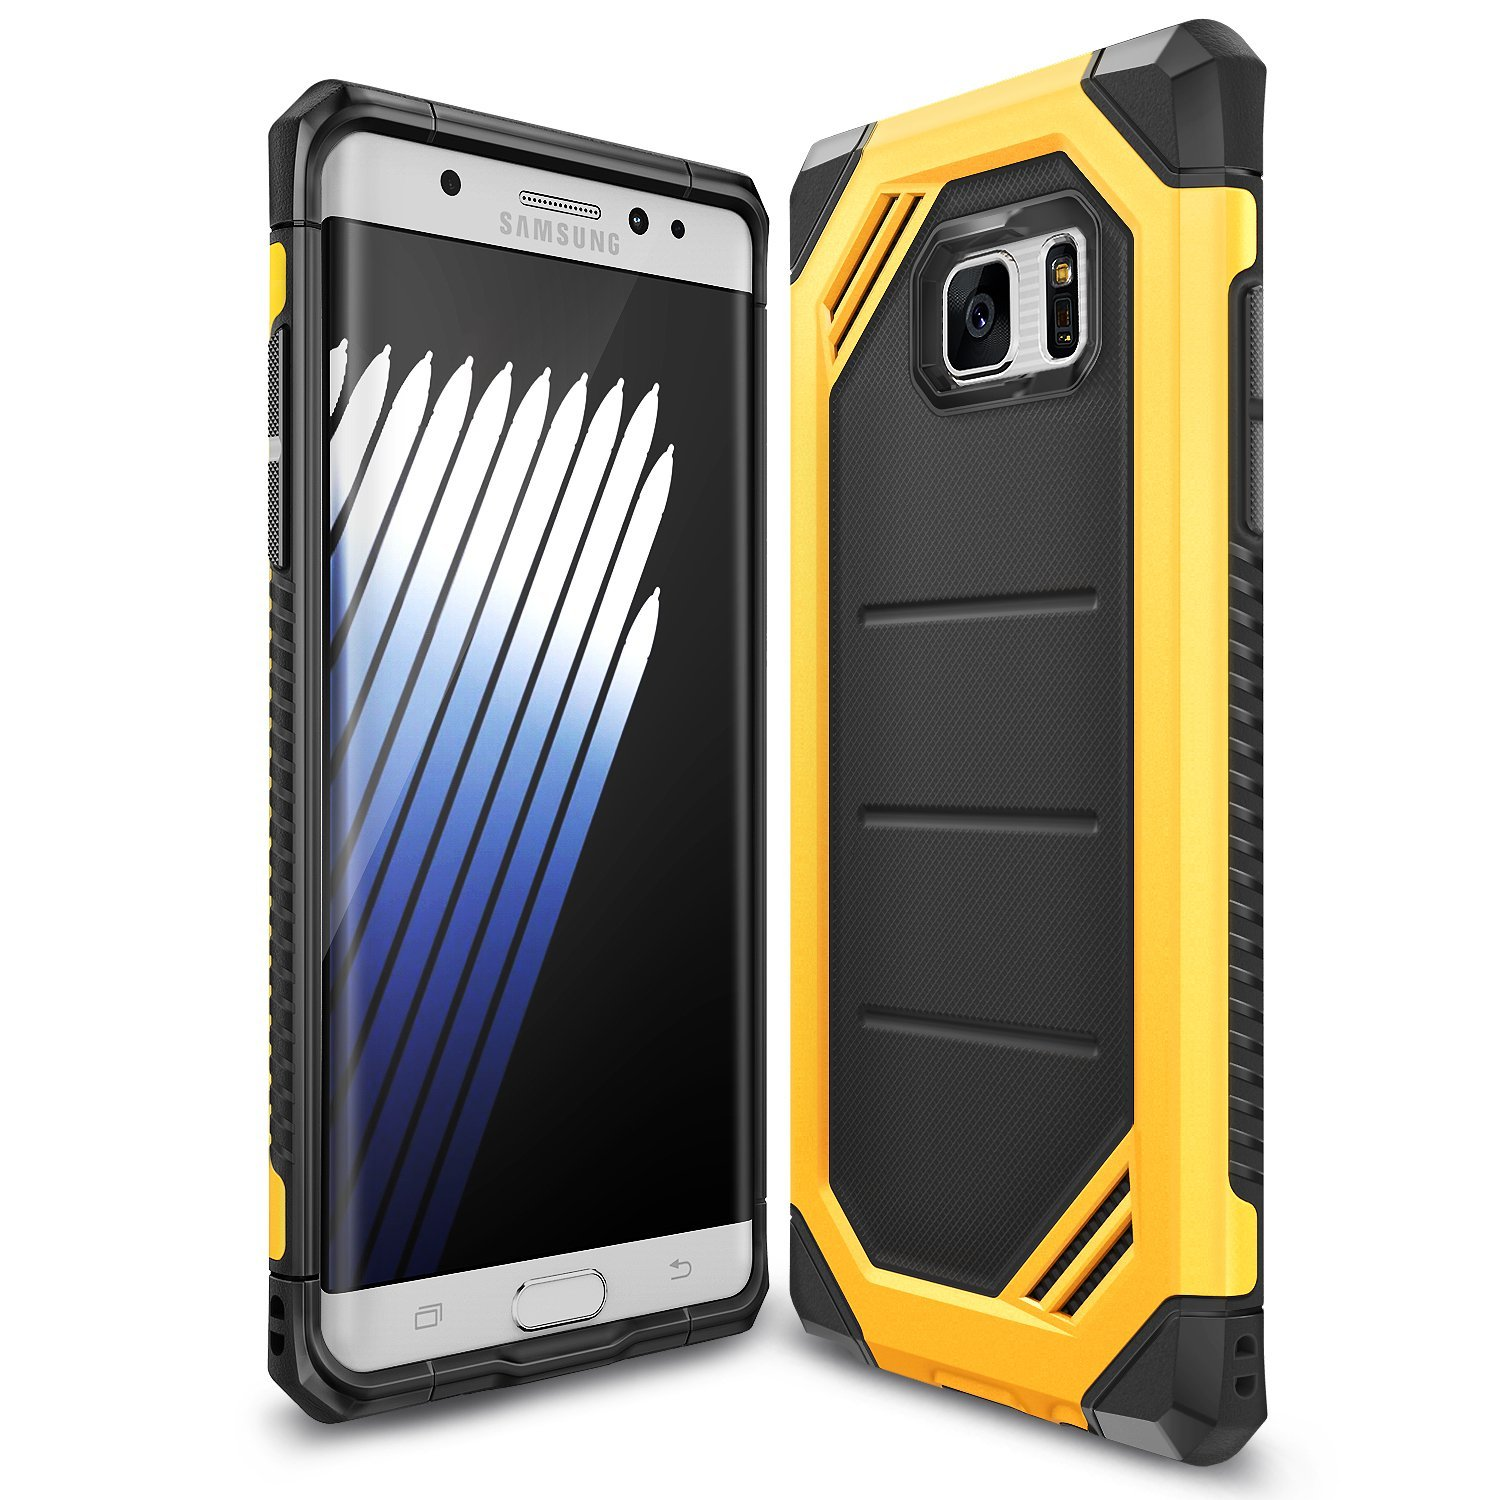 Galaxy Note 7 Cases, Galaxy Note 7 Case, samsung Galaxy Note 7 Cases, samsung Galaxy Note 7 Case, Note 7 Cases, Note 7 Case, best Galaxy Note 7 Cases, best Note 7 Cases, samsung phone cases